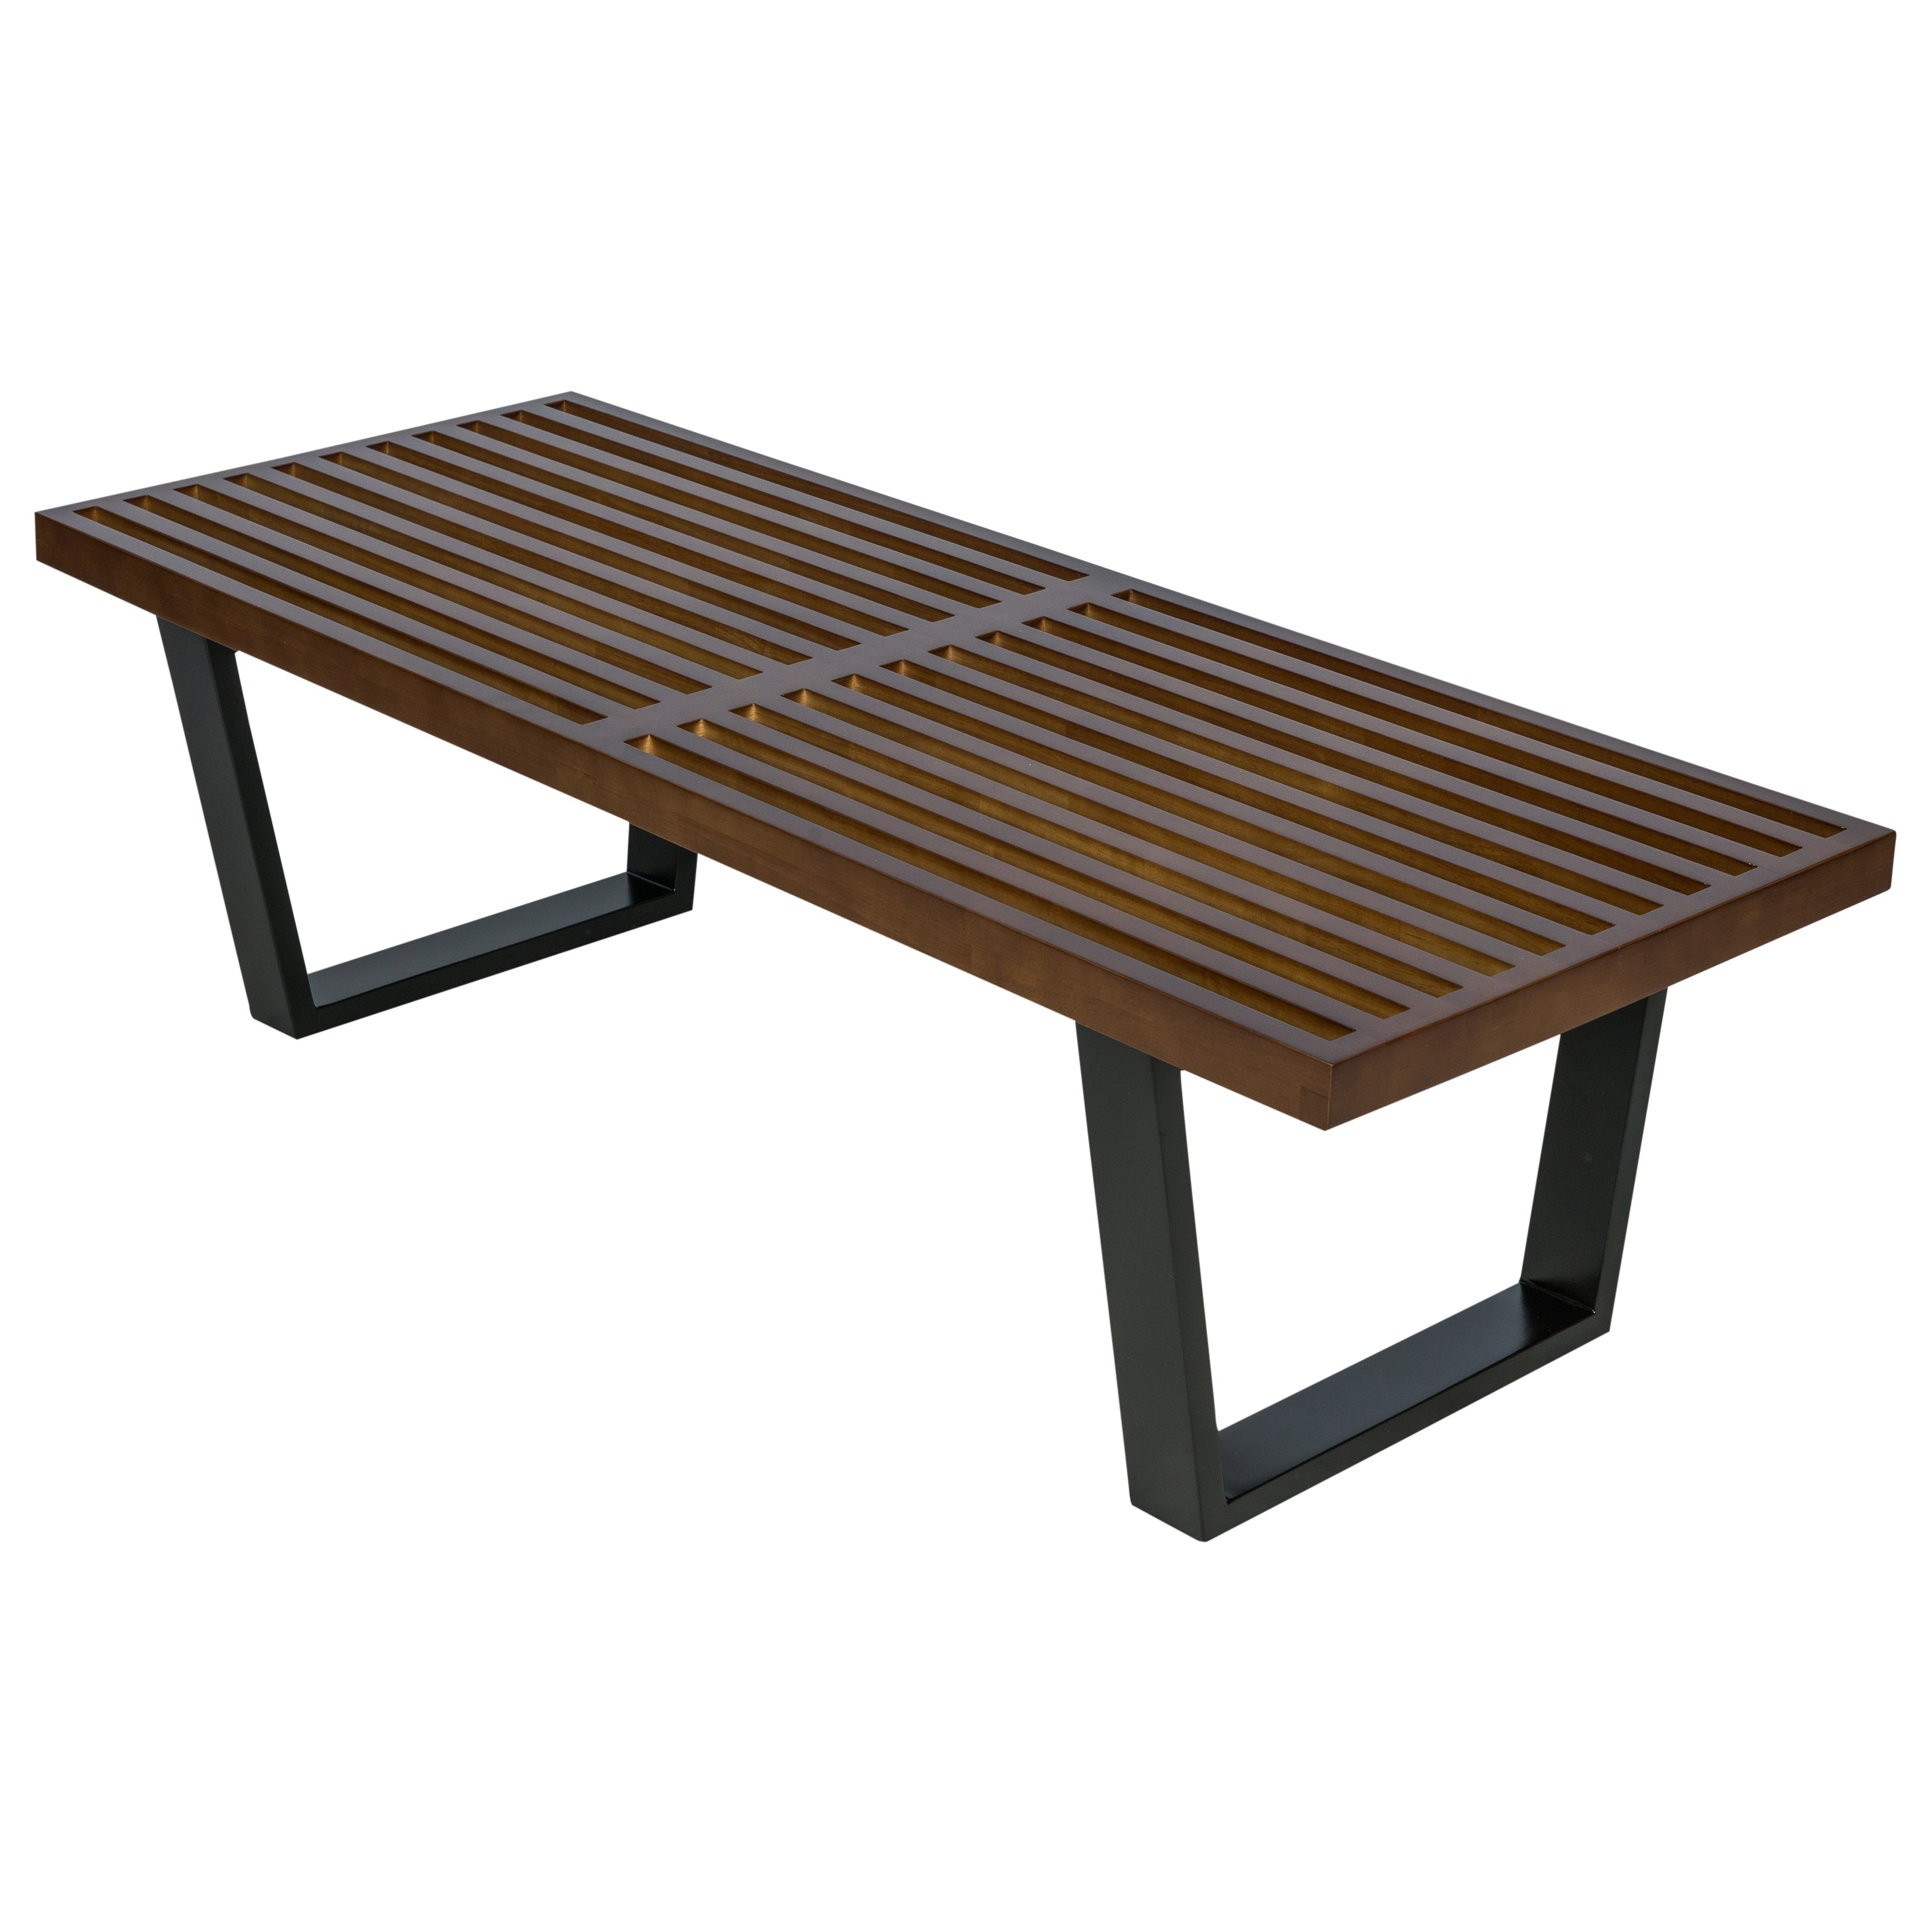 LeisureMod Mid-Century Nelson Platform Bench in Dark Walnut 4 Feet